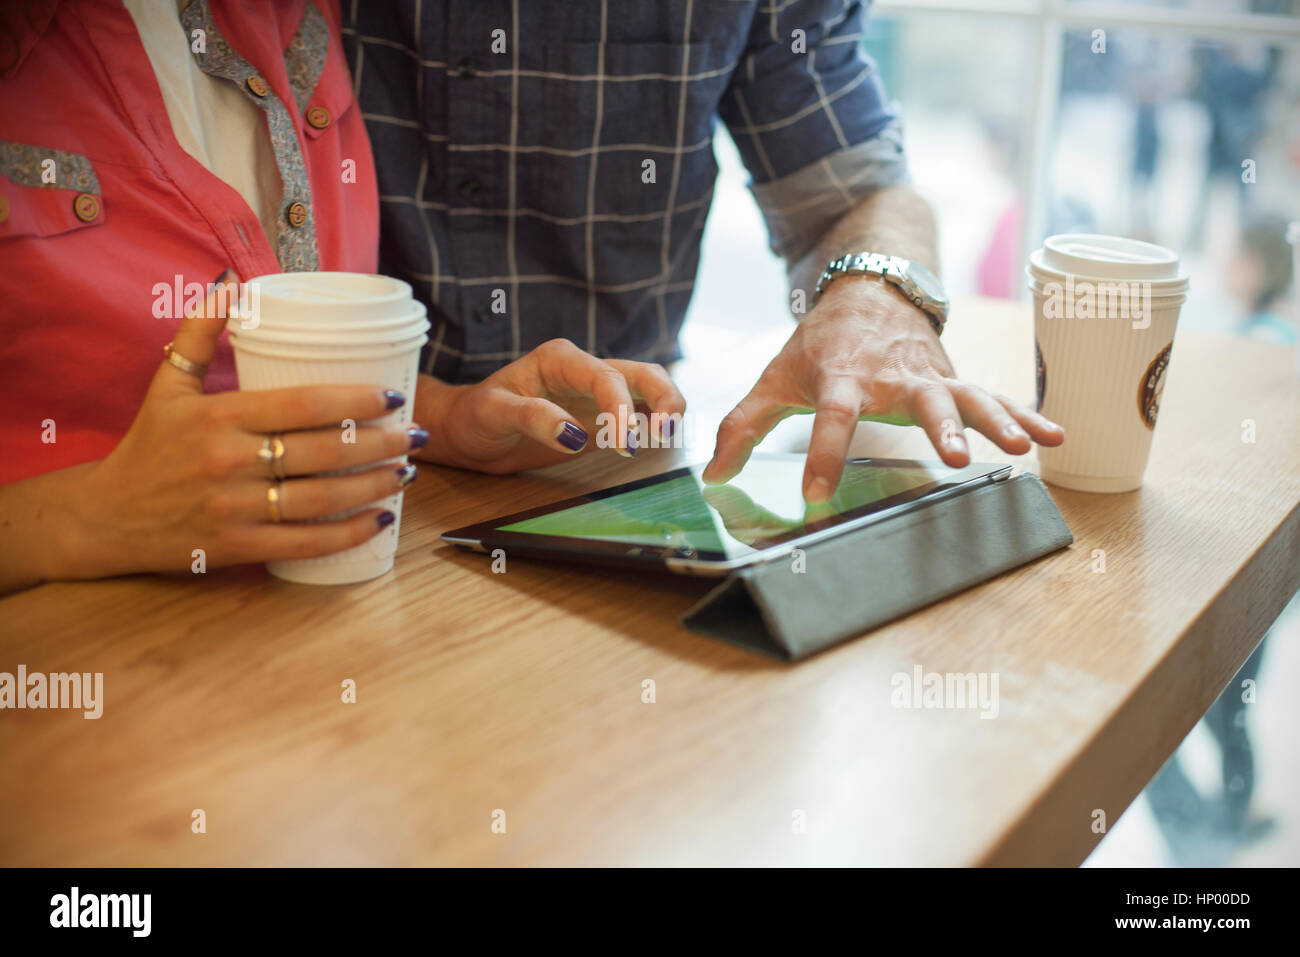 Couple using digital tablet in coffee shop, cropped Photo Stock